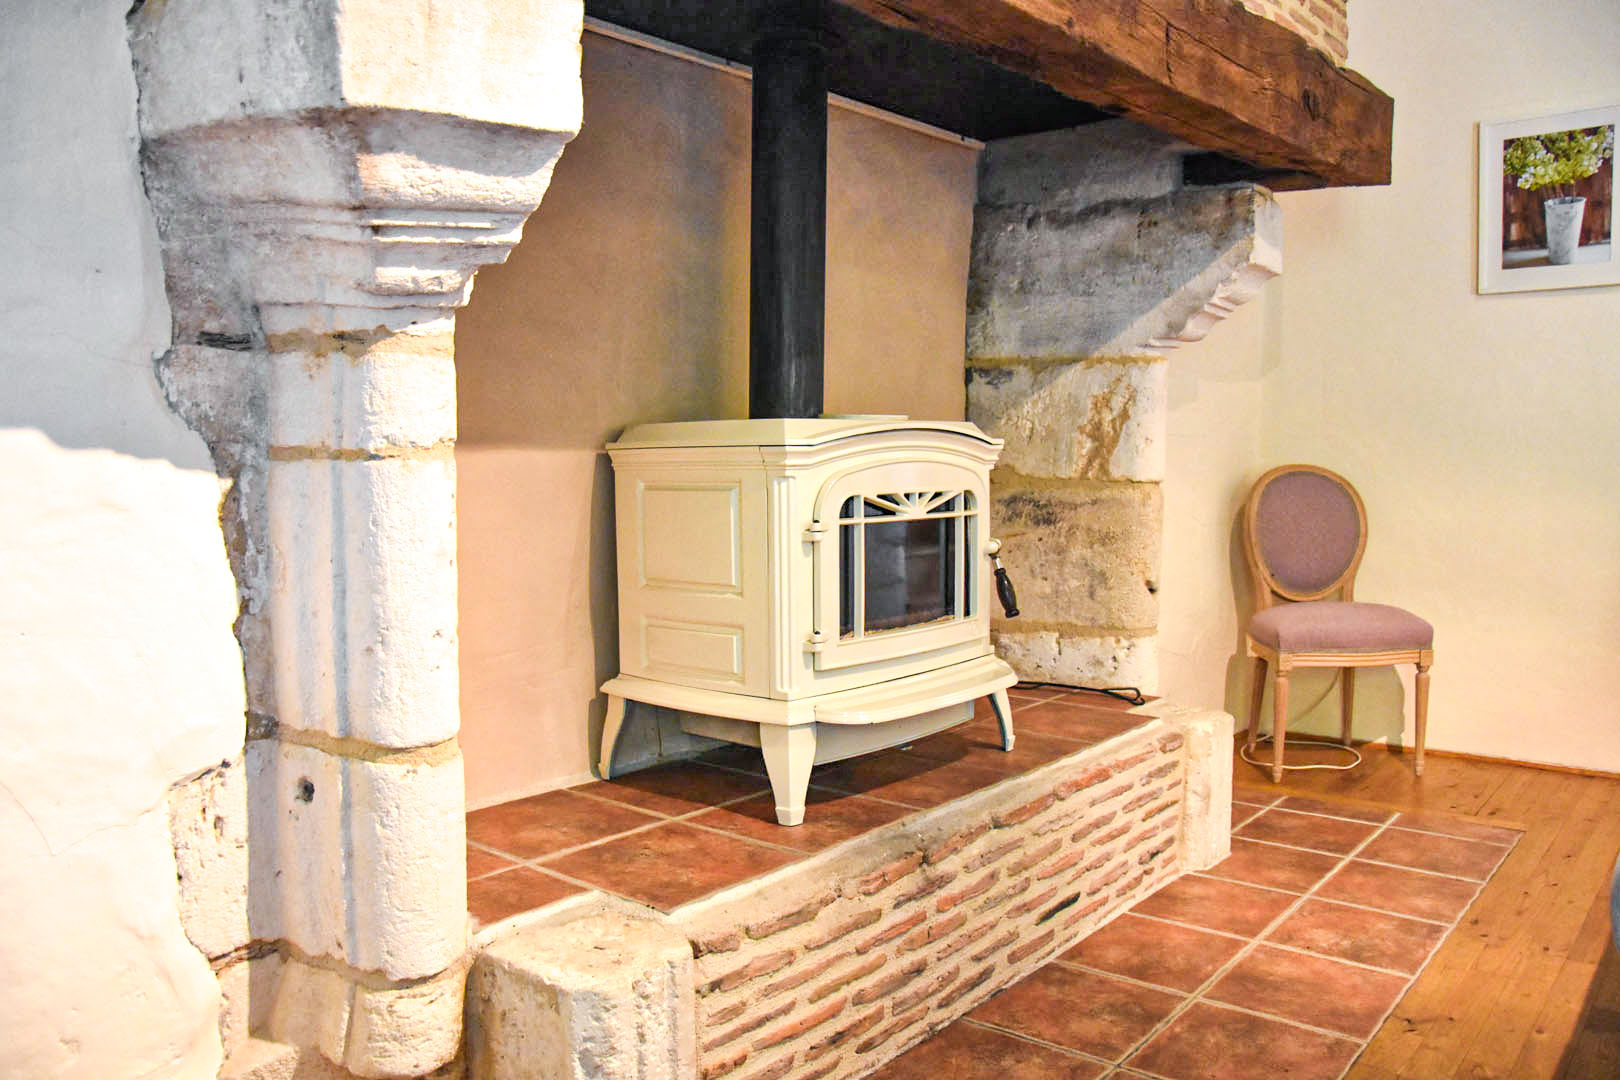 chimney and wood stove